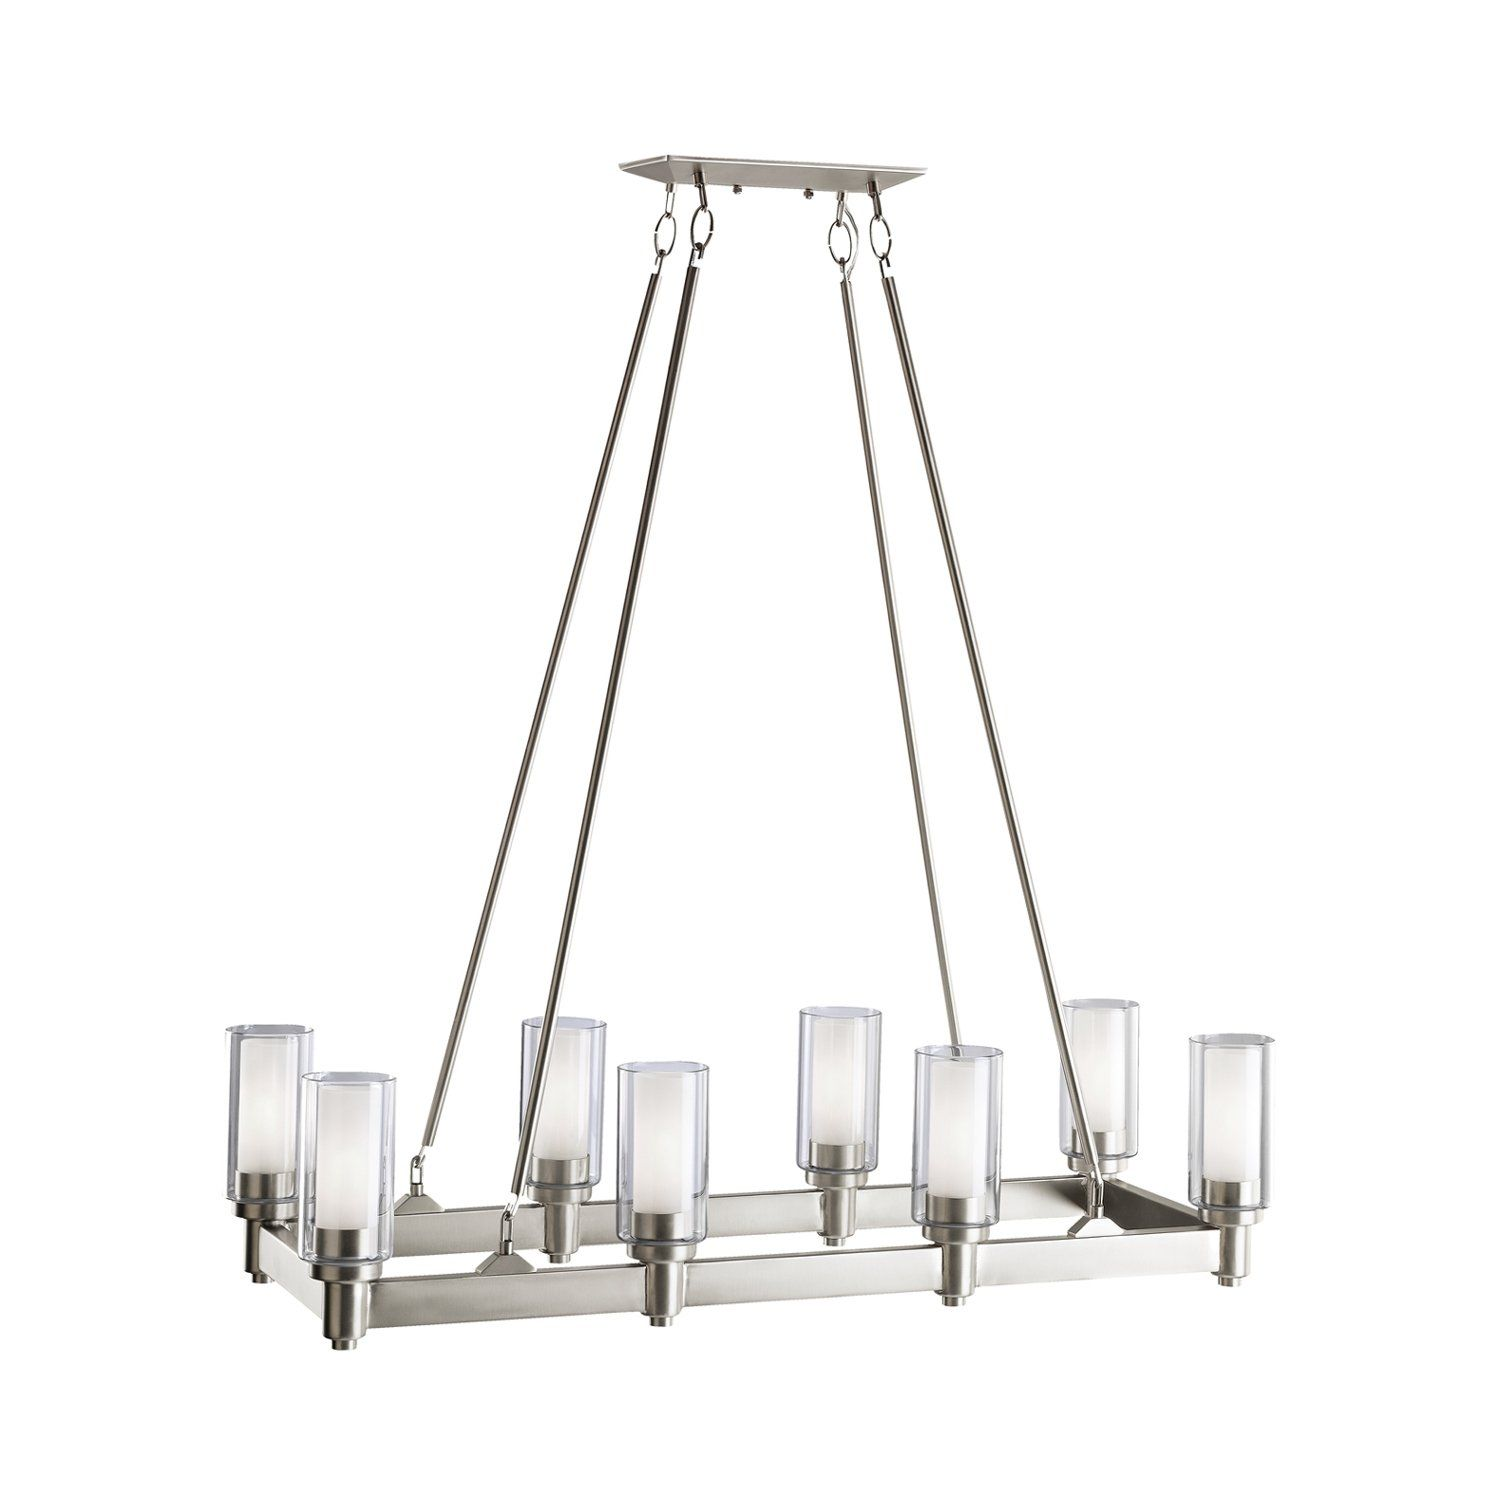 Clean lines nice for a solid rectangular table kichler lighting 8 light linear chandelier in brushed nickel circolo collection kichler lighting pendant ceiling landscape light fixtures arubaitofo Images